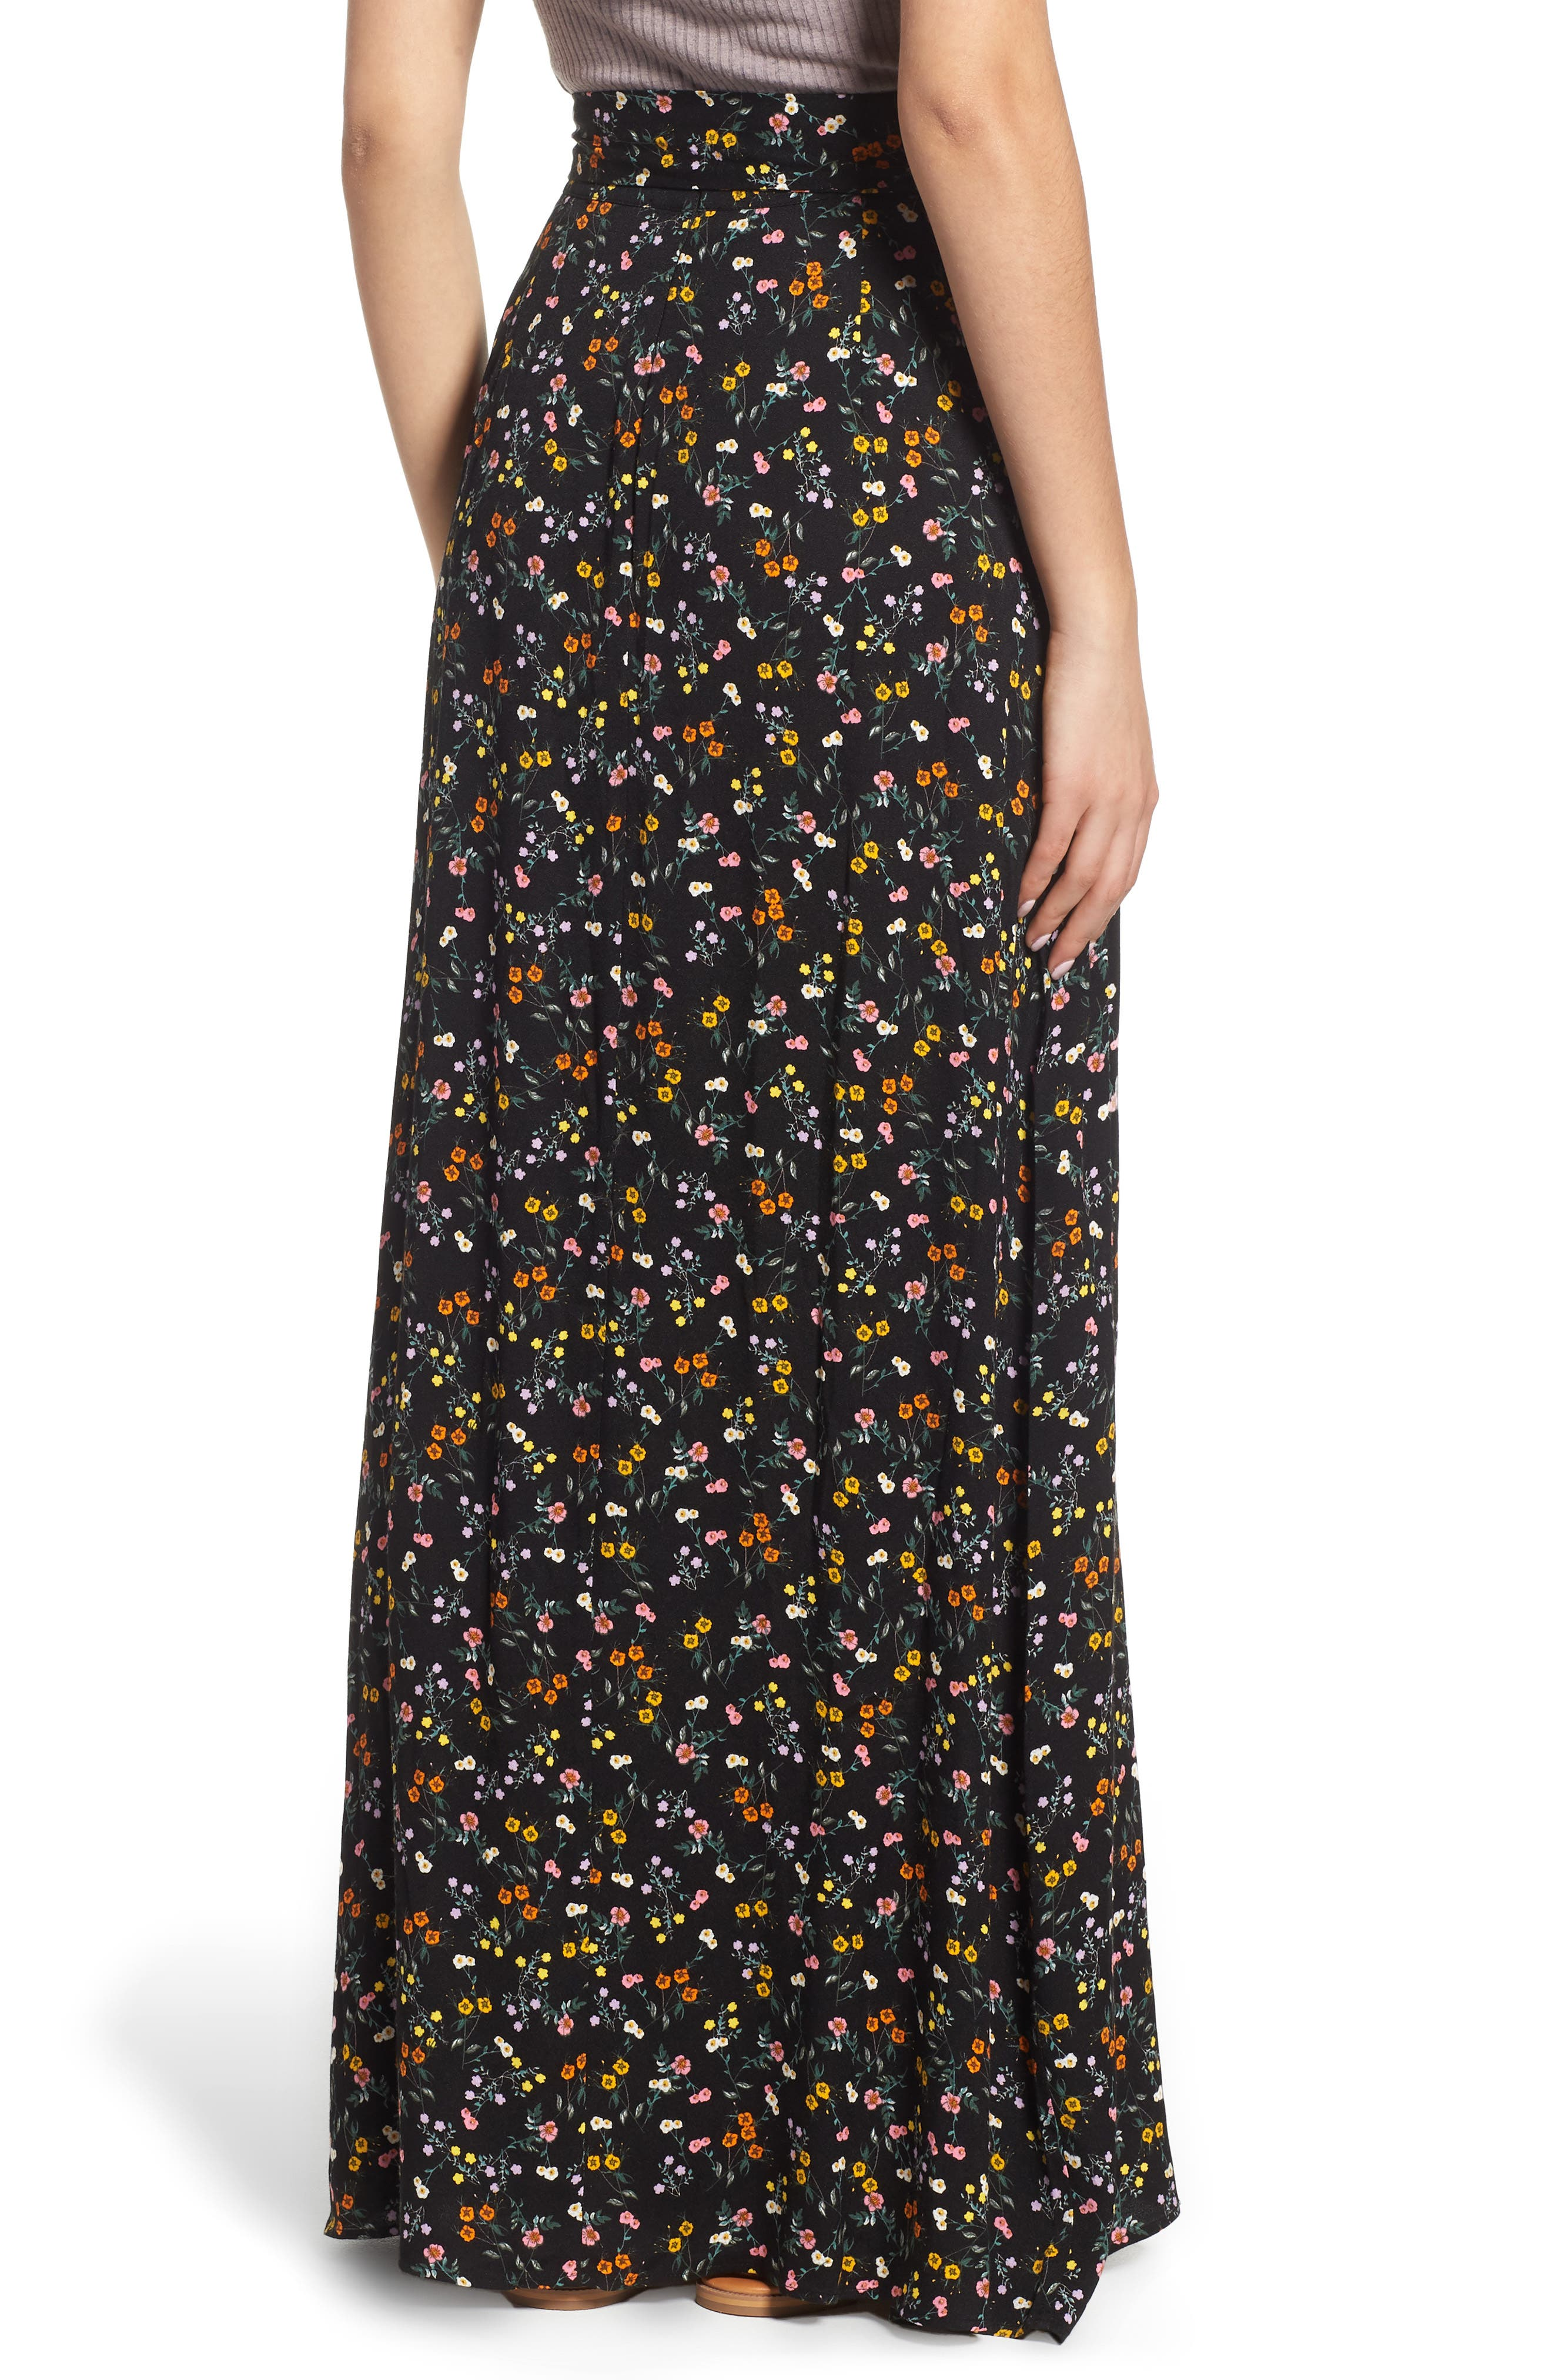 Alessandra Maxi Skirt,                             Alternate thumbnail 2, color,                             001